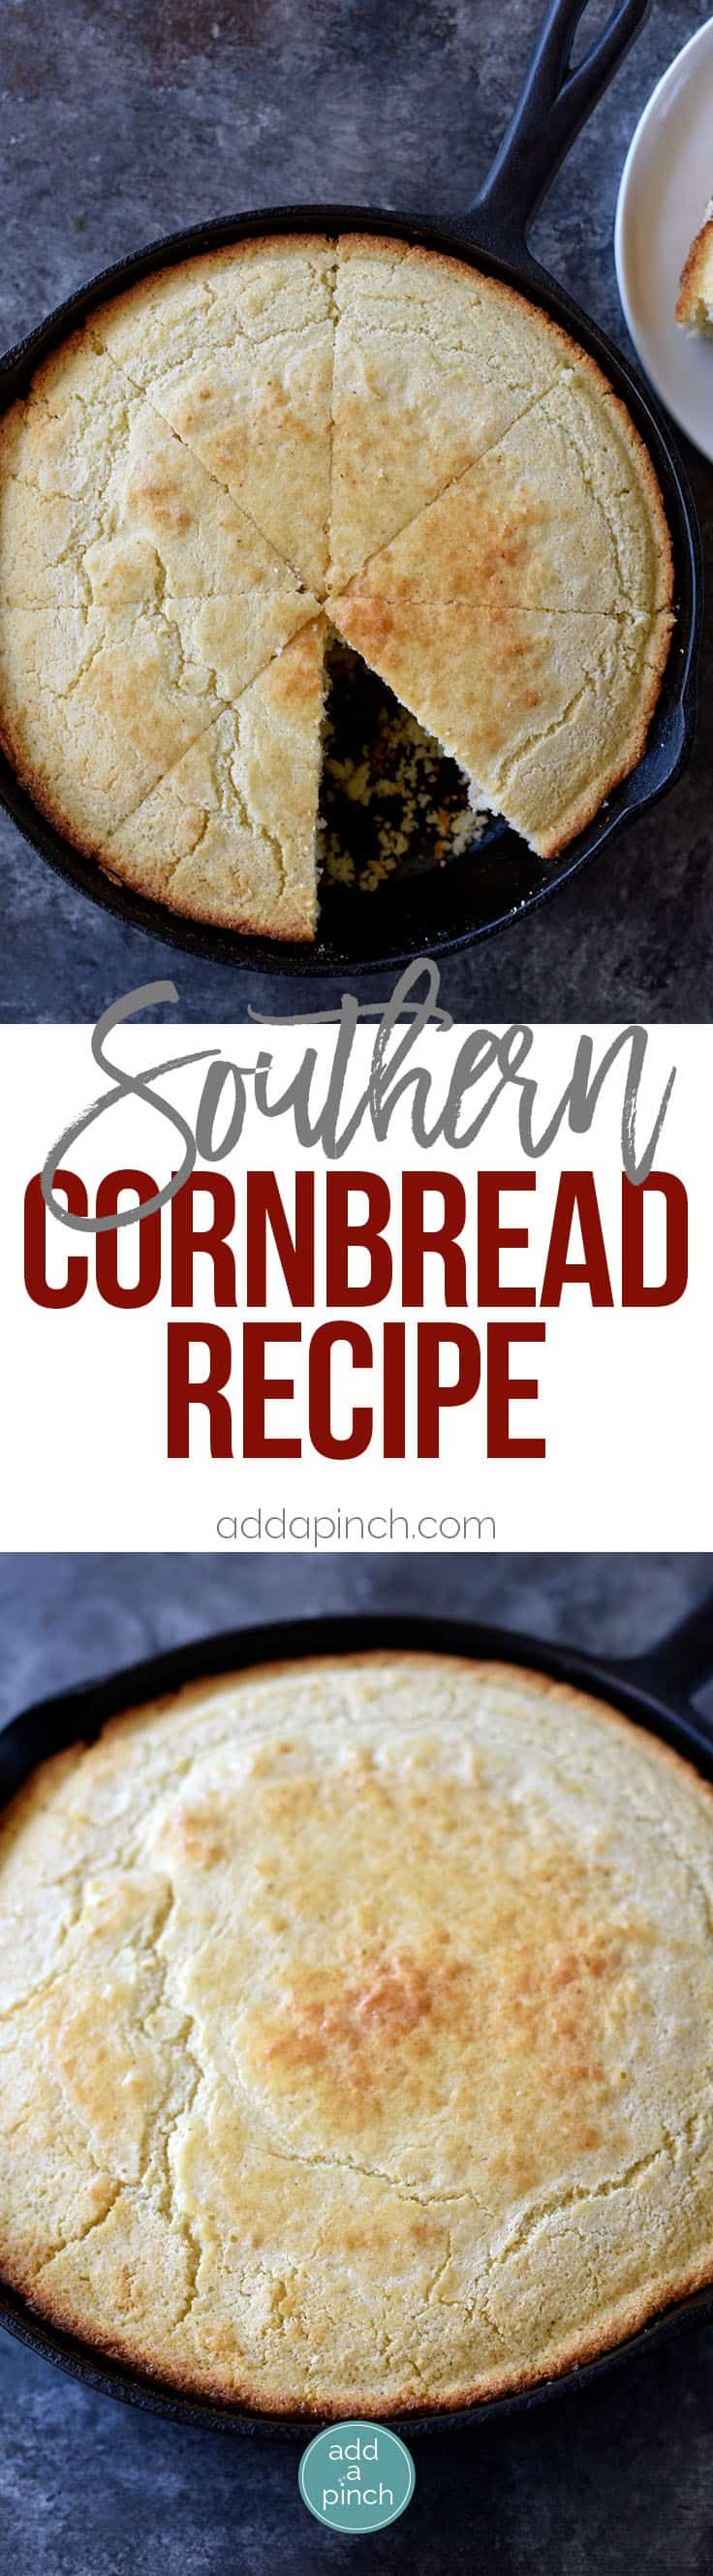 Southern Cornbread Recipe - Cornbread makes a classic Southern side dish. Southern cornbread is made with cornmeal, flour, buttermilk, eggs and ready in 30 minutes! // addapinch.com